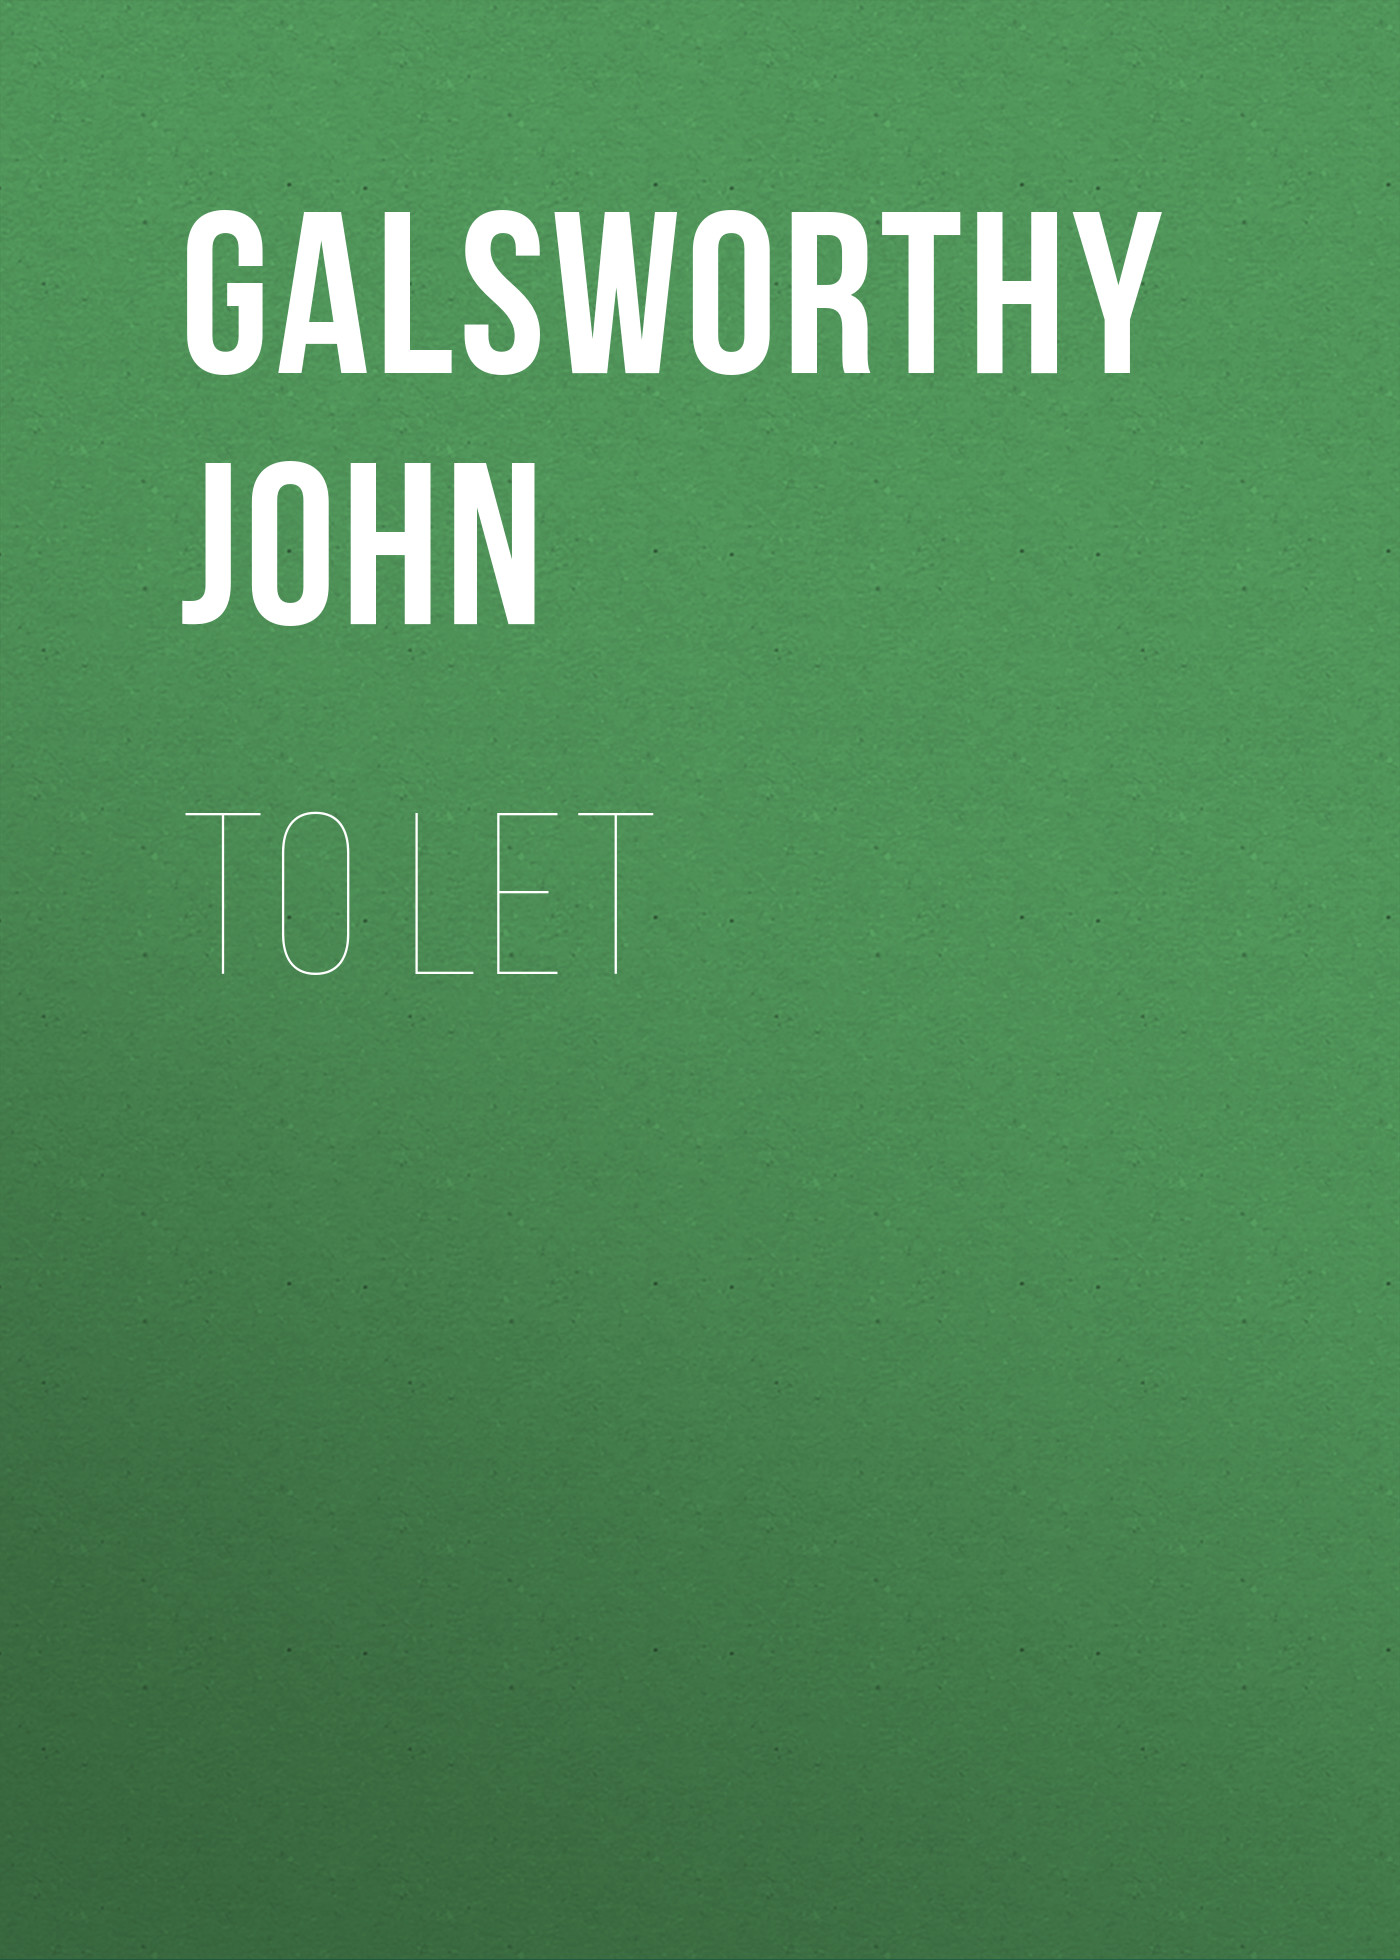 Galsworthy John To Let john galsworthy five tales